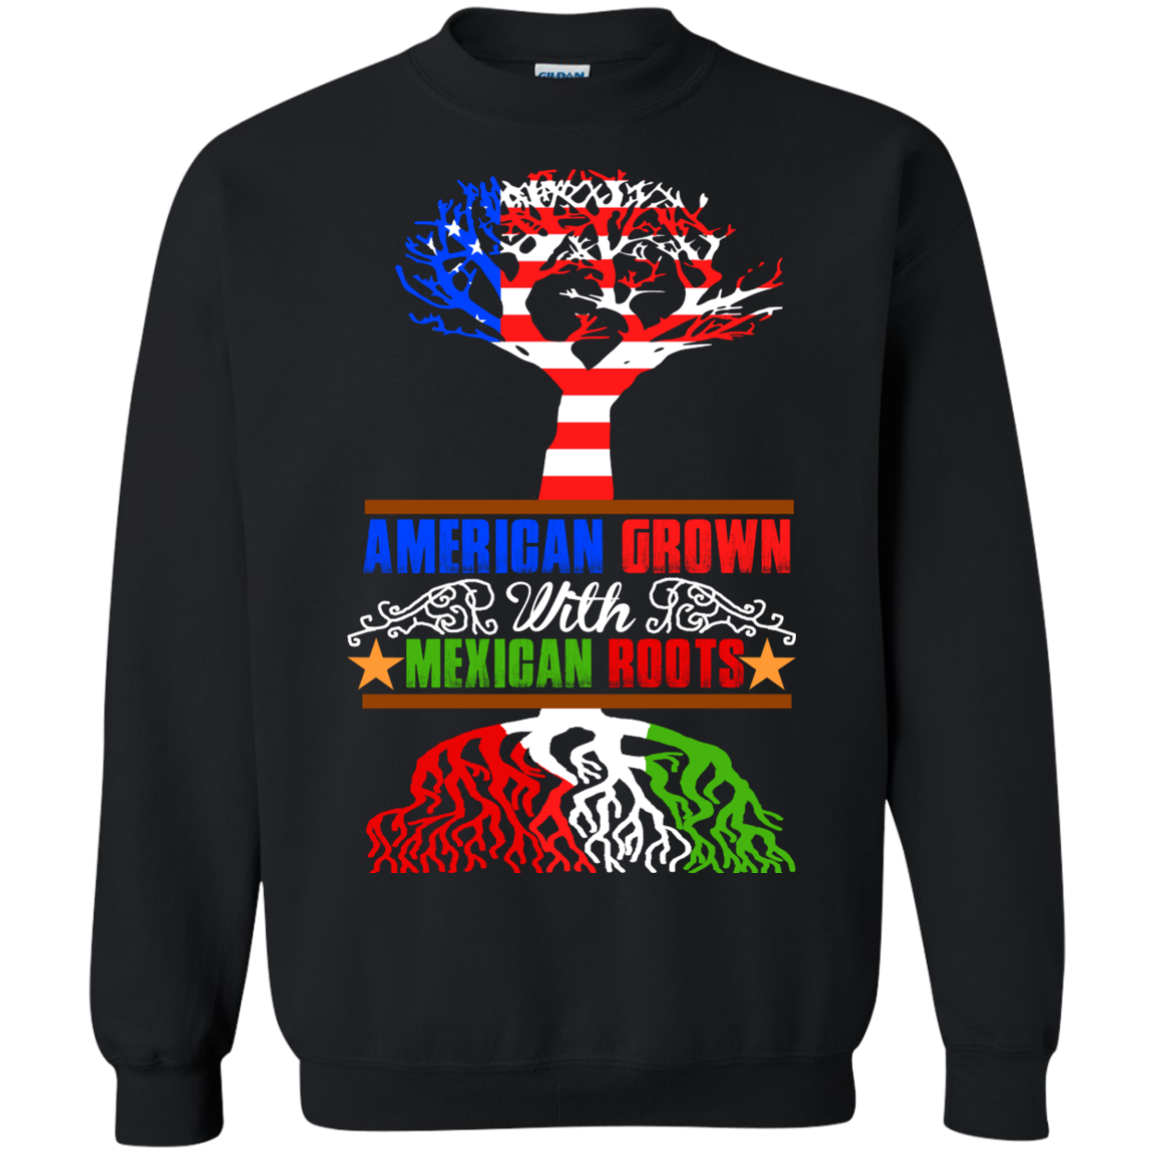 AMERICAN GROWN, MEXICAN ROOTS T-Shirt Hoodie Long sleeve Sweatshirt - The Sun Cat